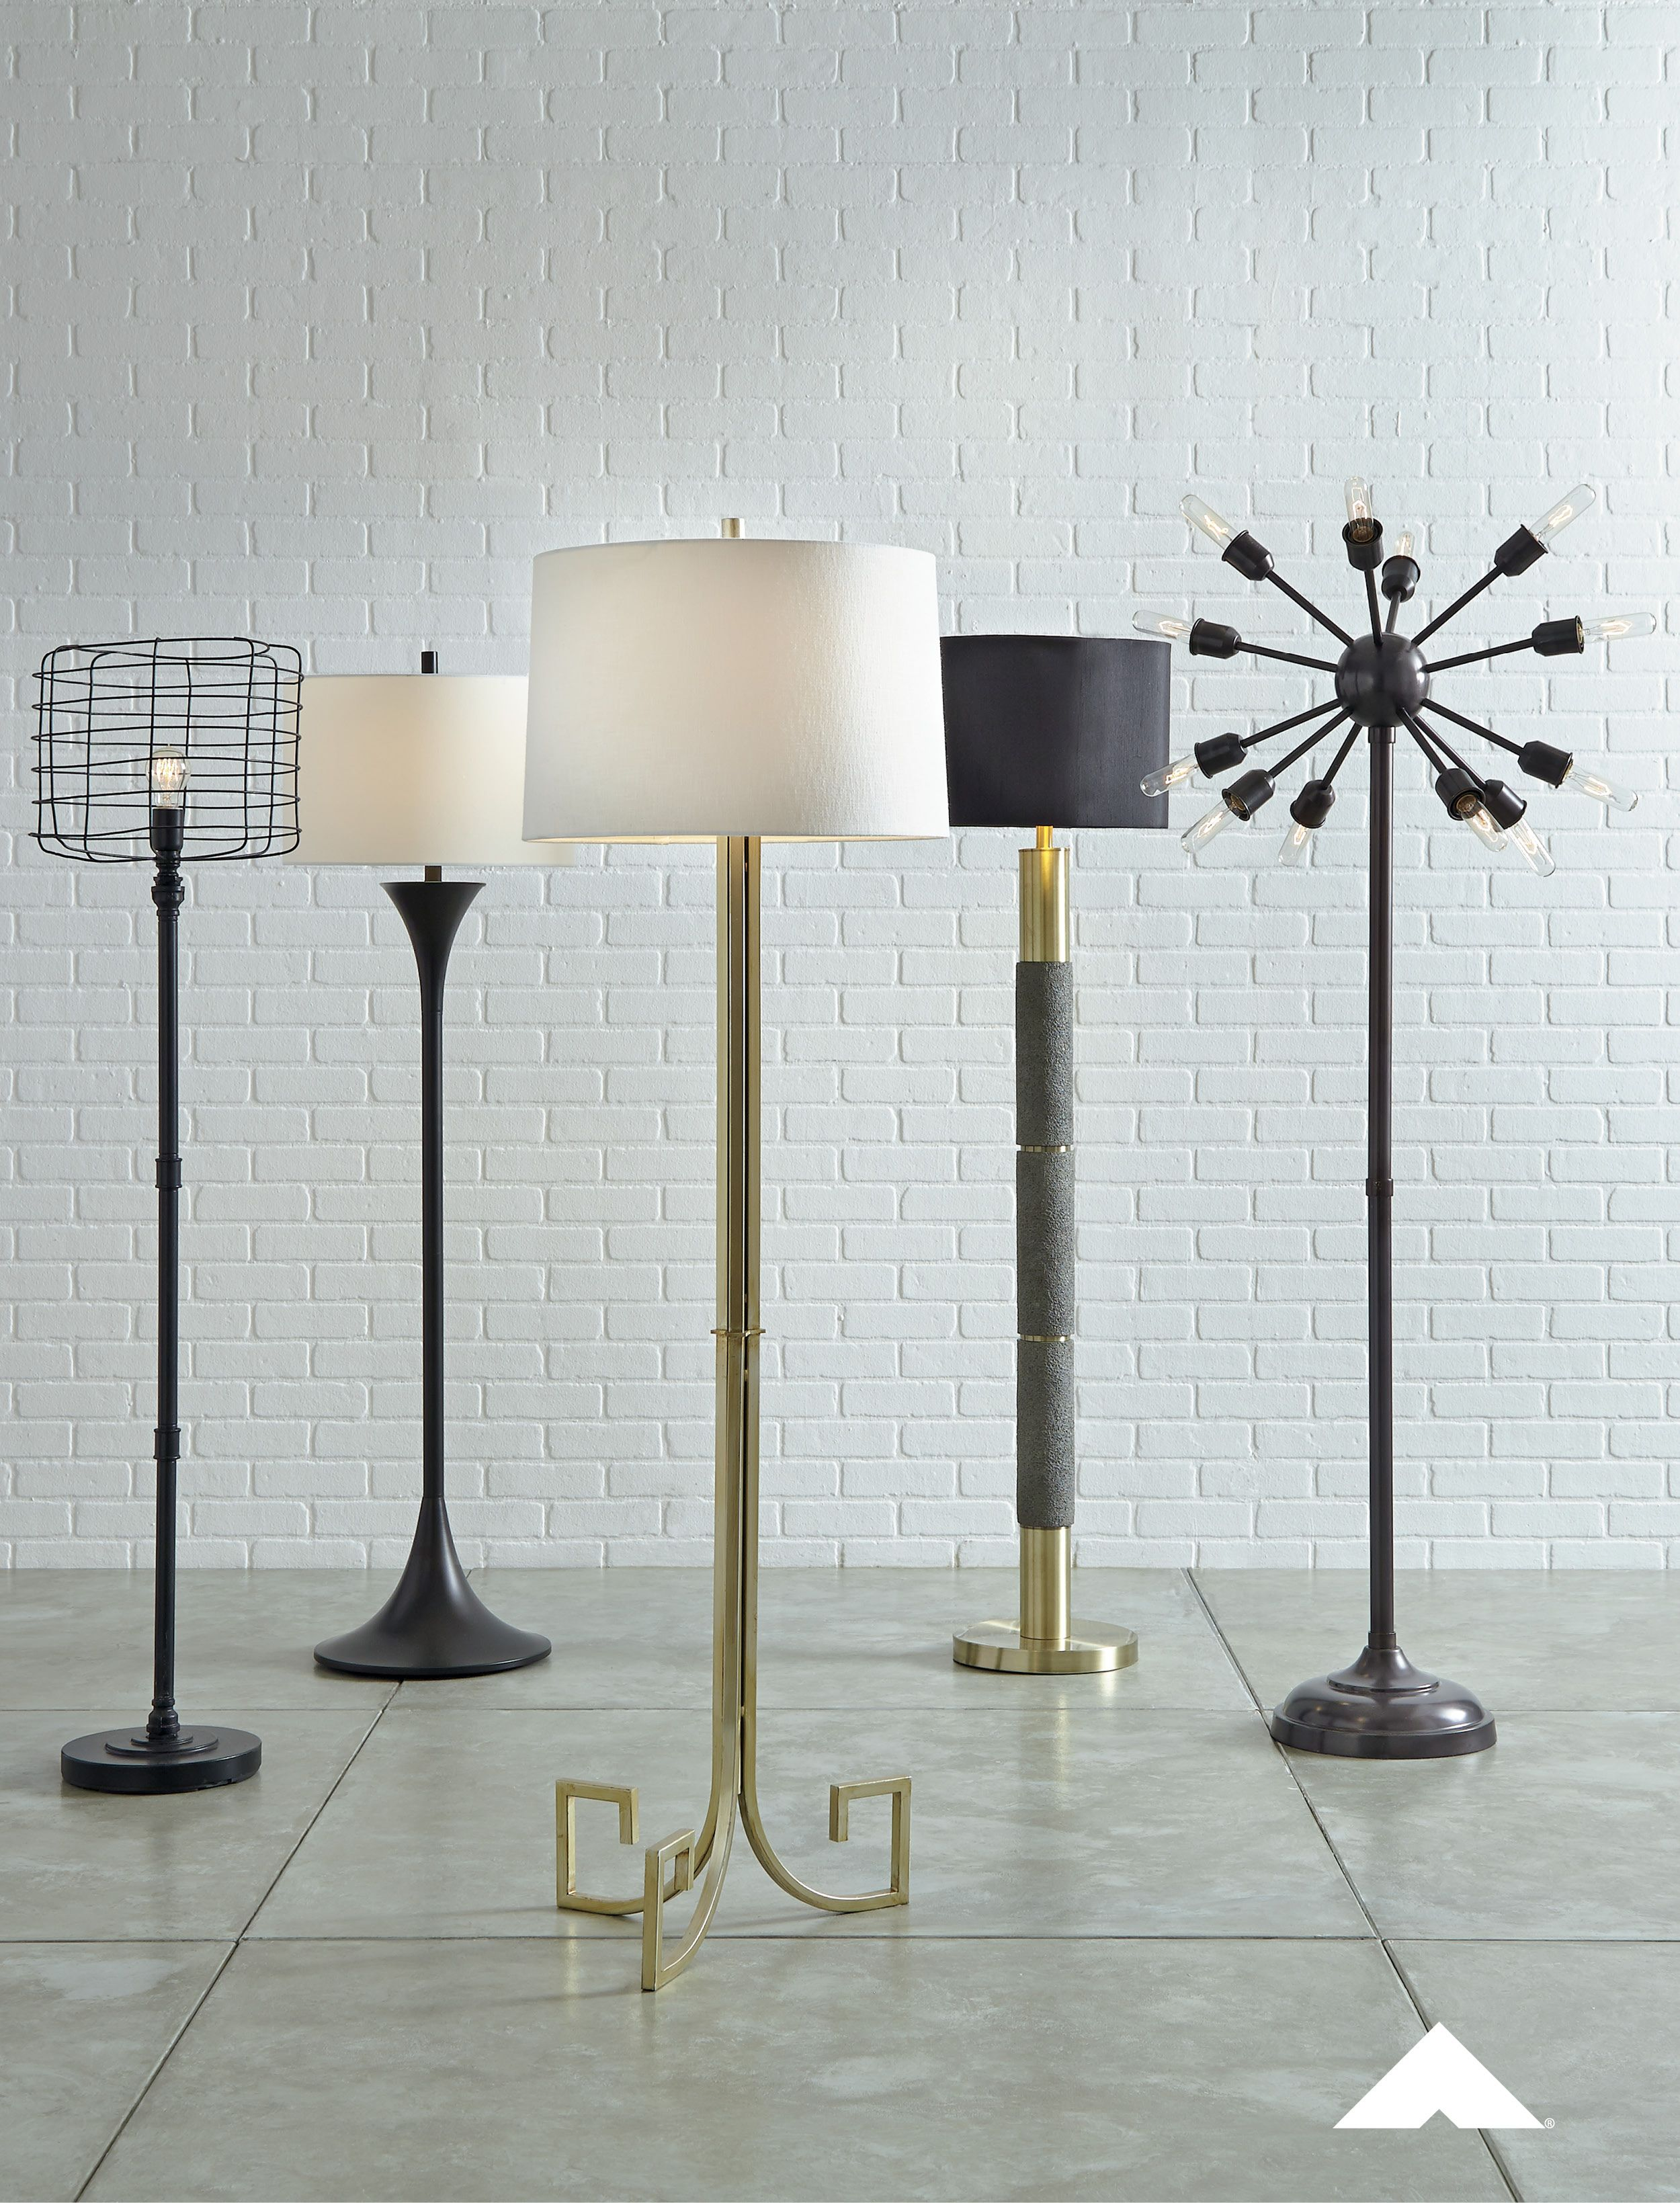 Floor Lamps From Ashley Furniture Ashleyfurniture Floorlamps Homedecor Lamp Floor Lamp Ashley Furniture